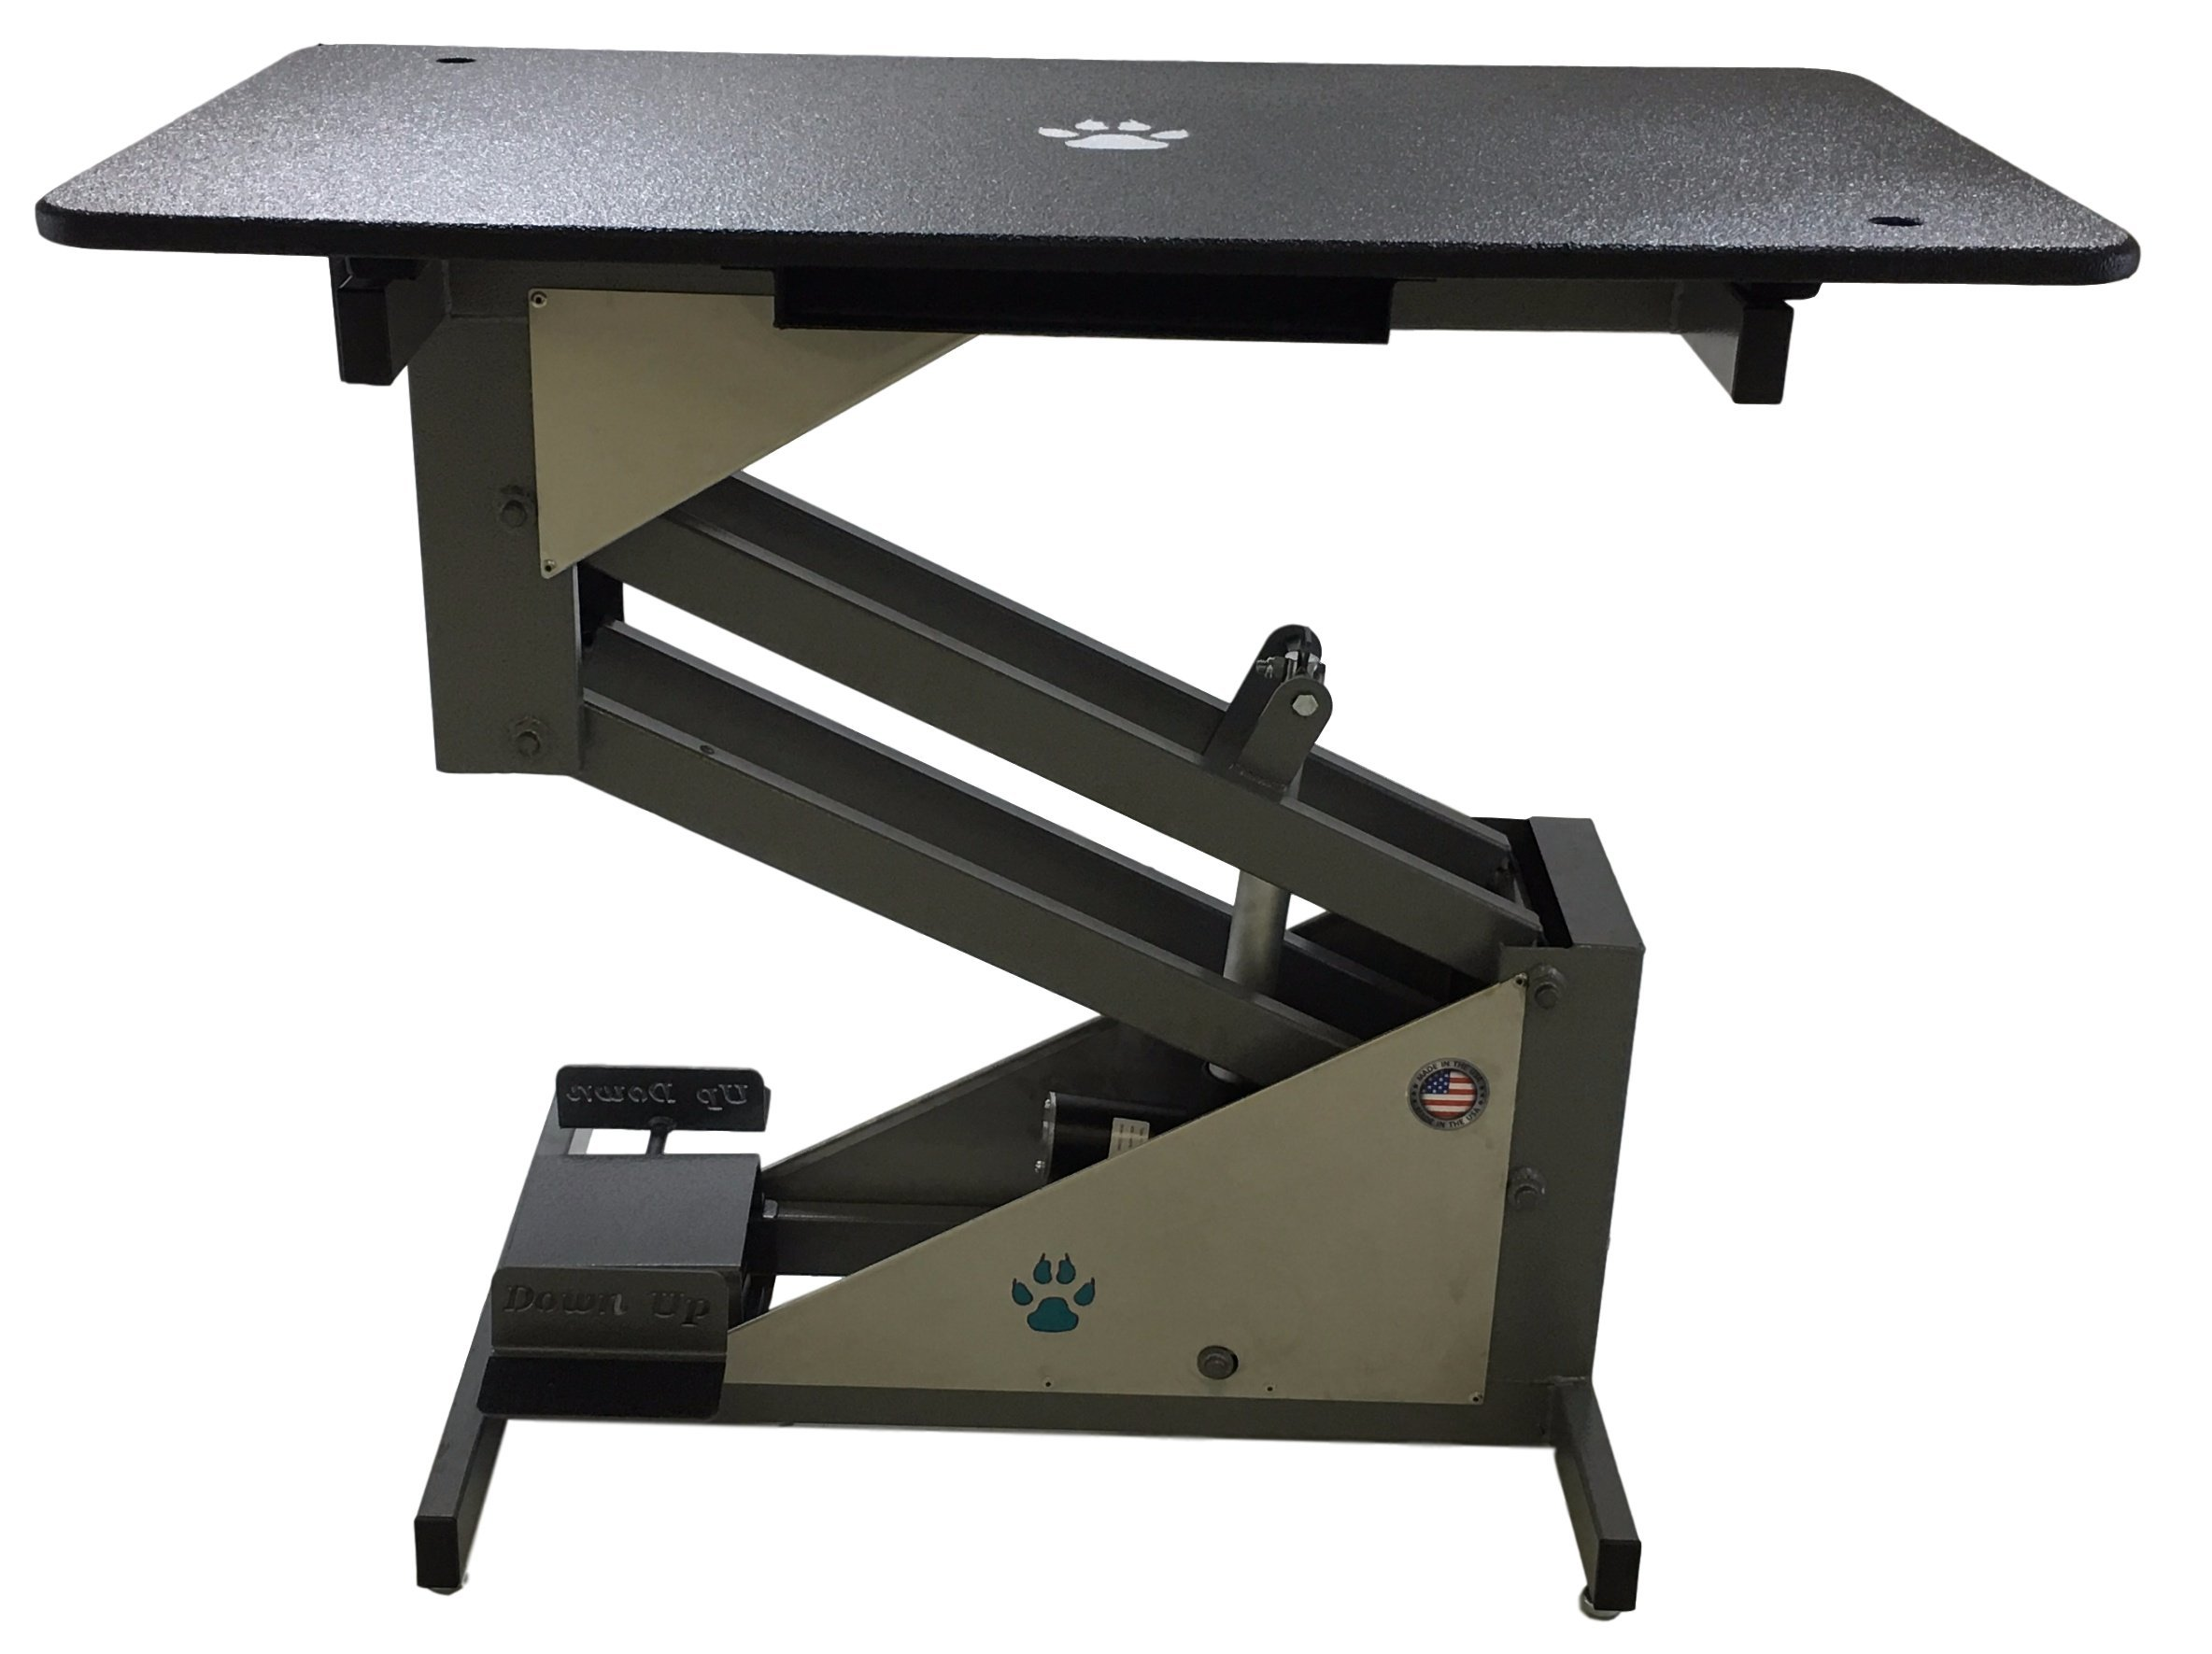 Groomer's Best Electric Grooming Table for Pets, 24 by 42-Inch by Groomer's Best (Image #1)